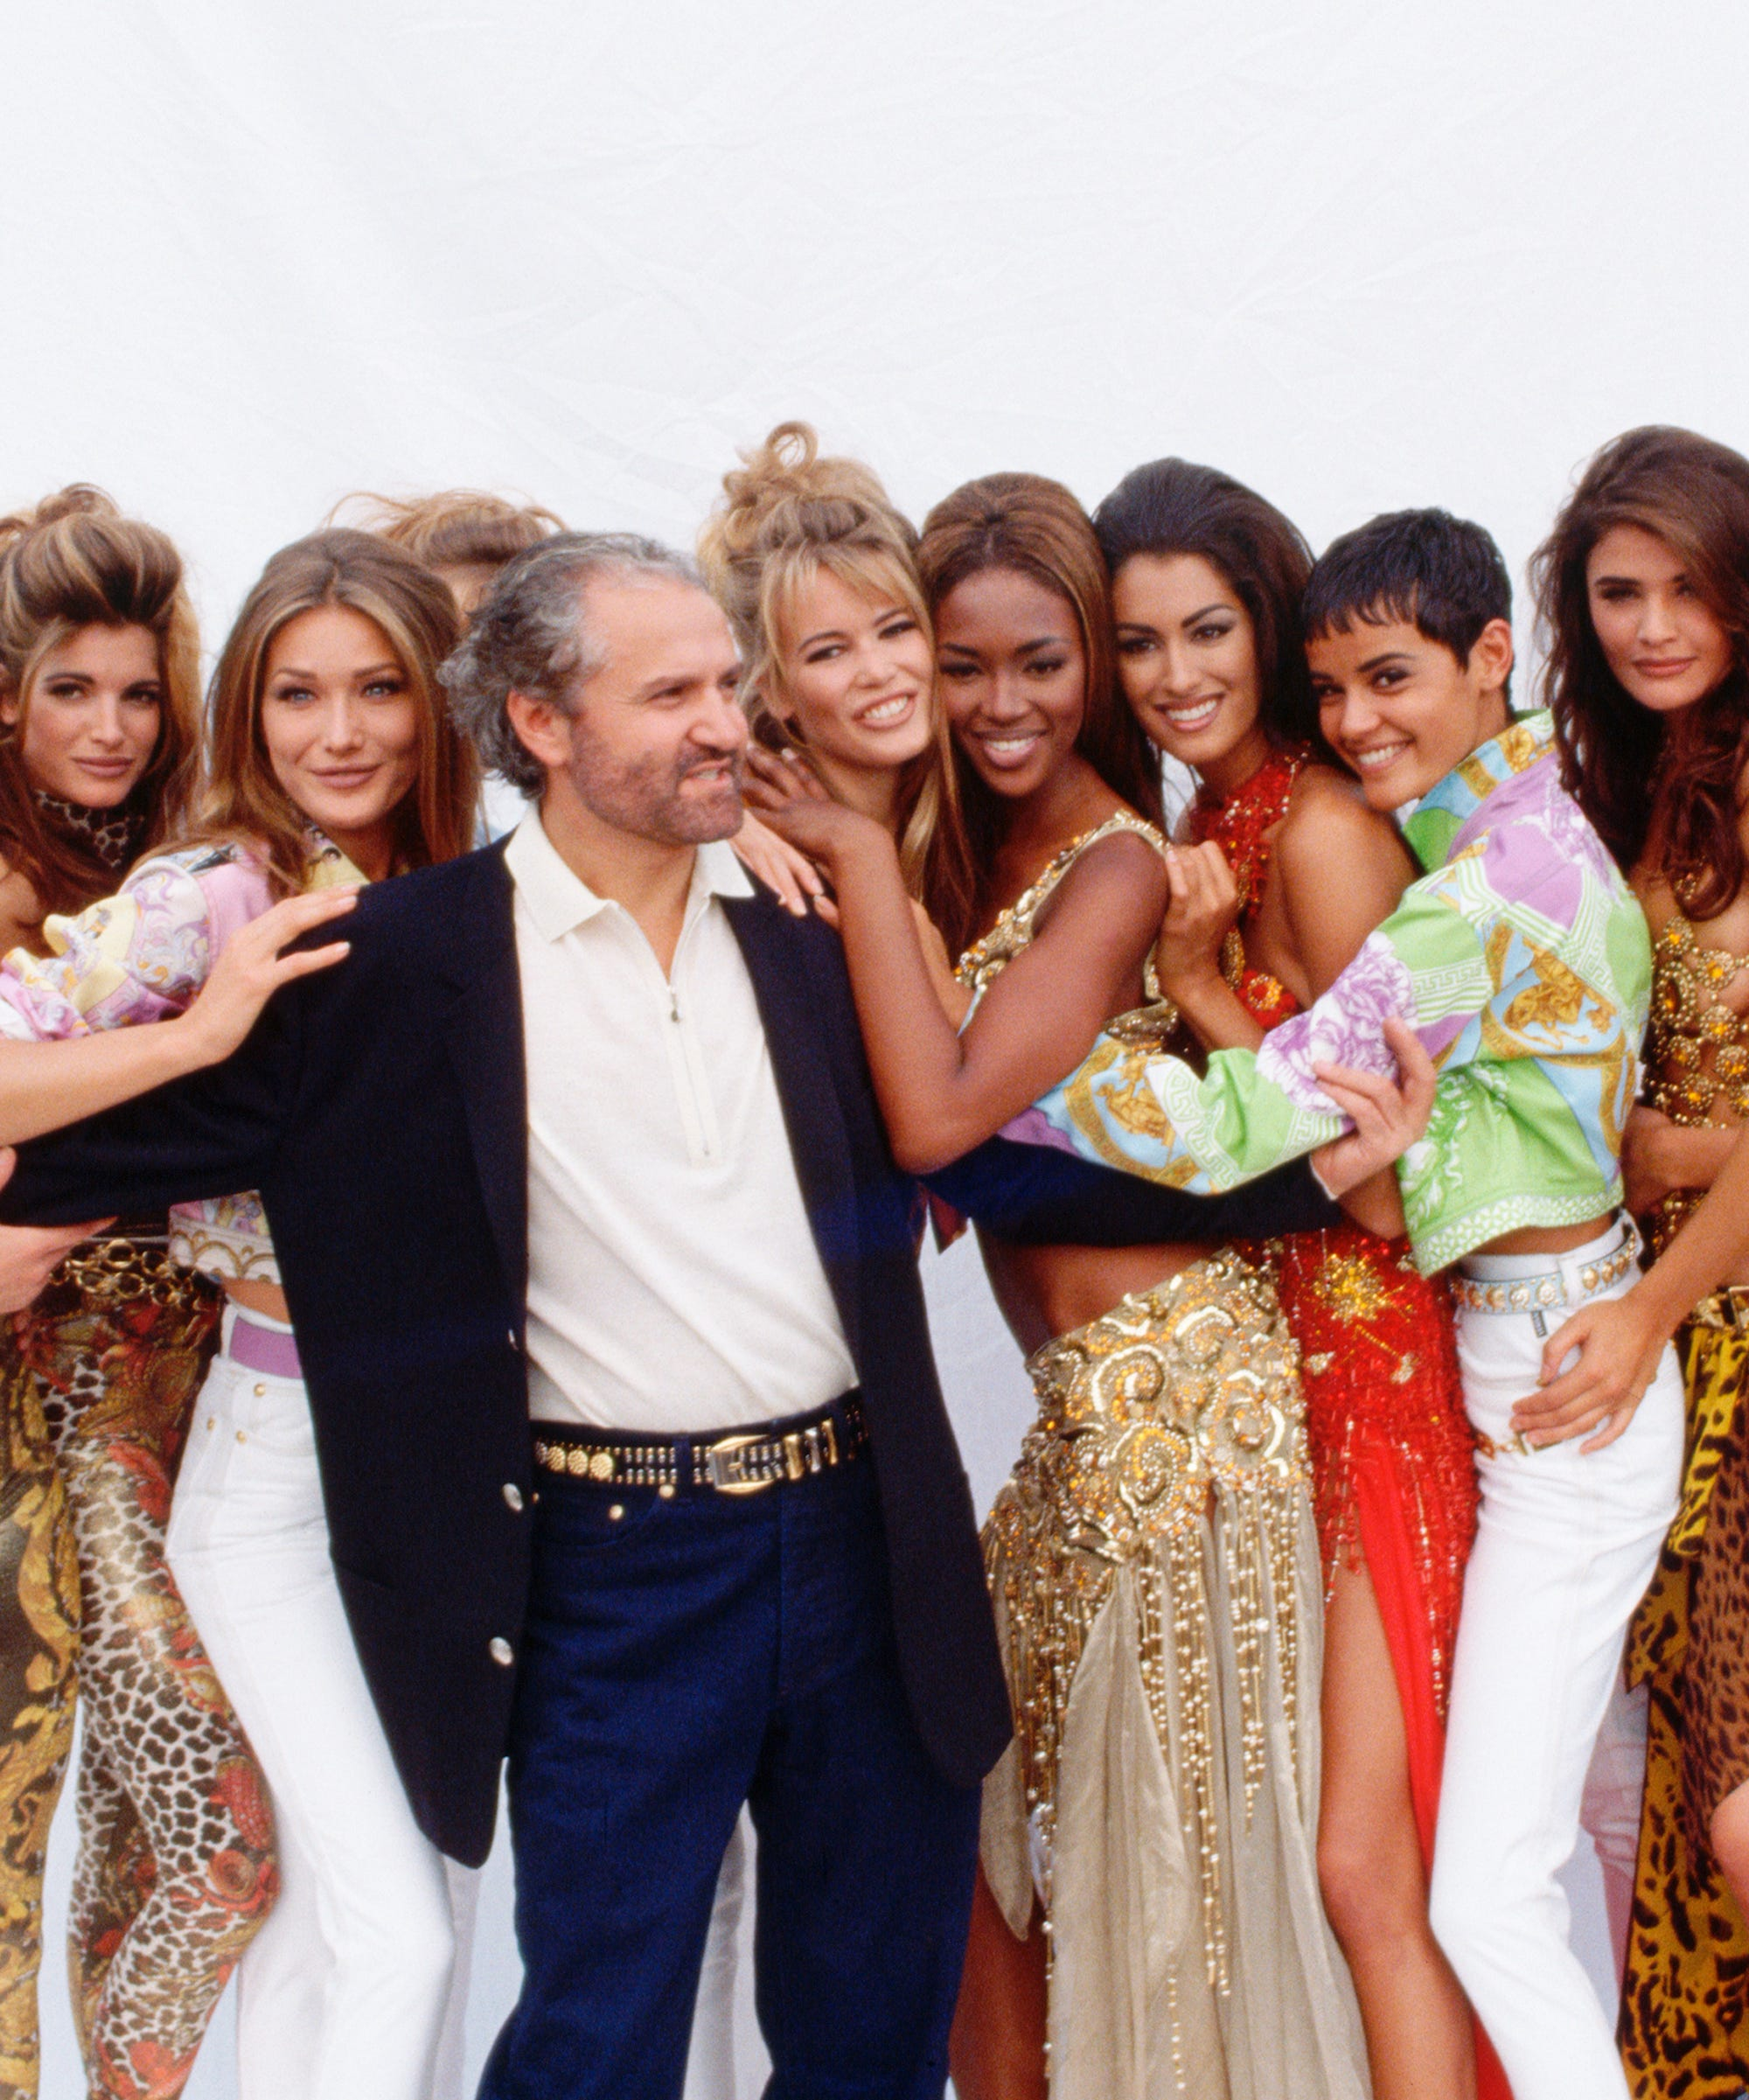 616b0c8427b To Celebrate The 20th Anniversary Of Gianni Versace s Death